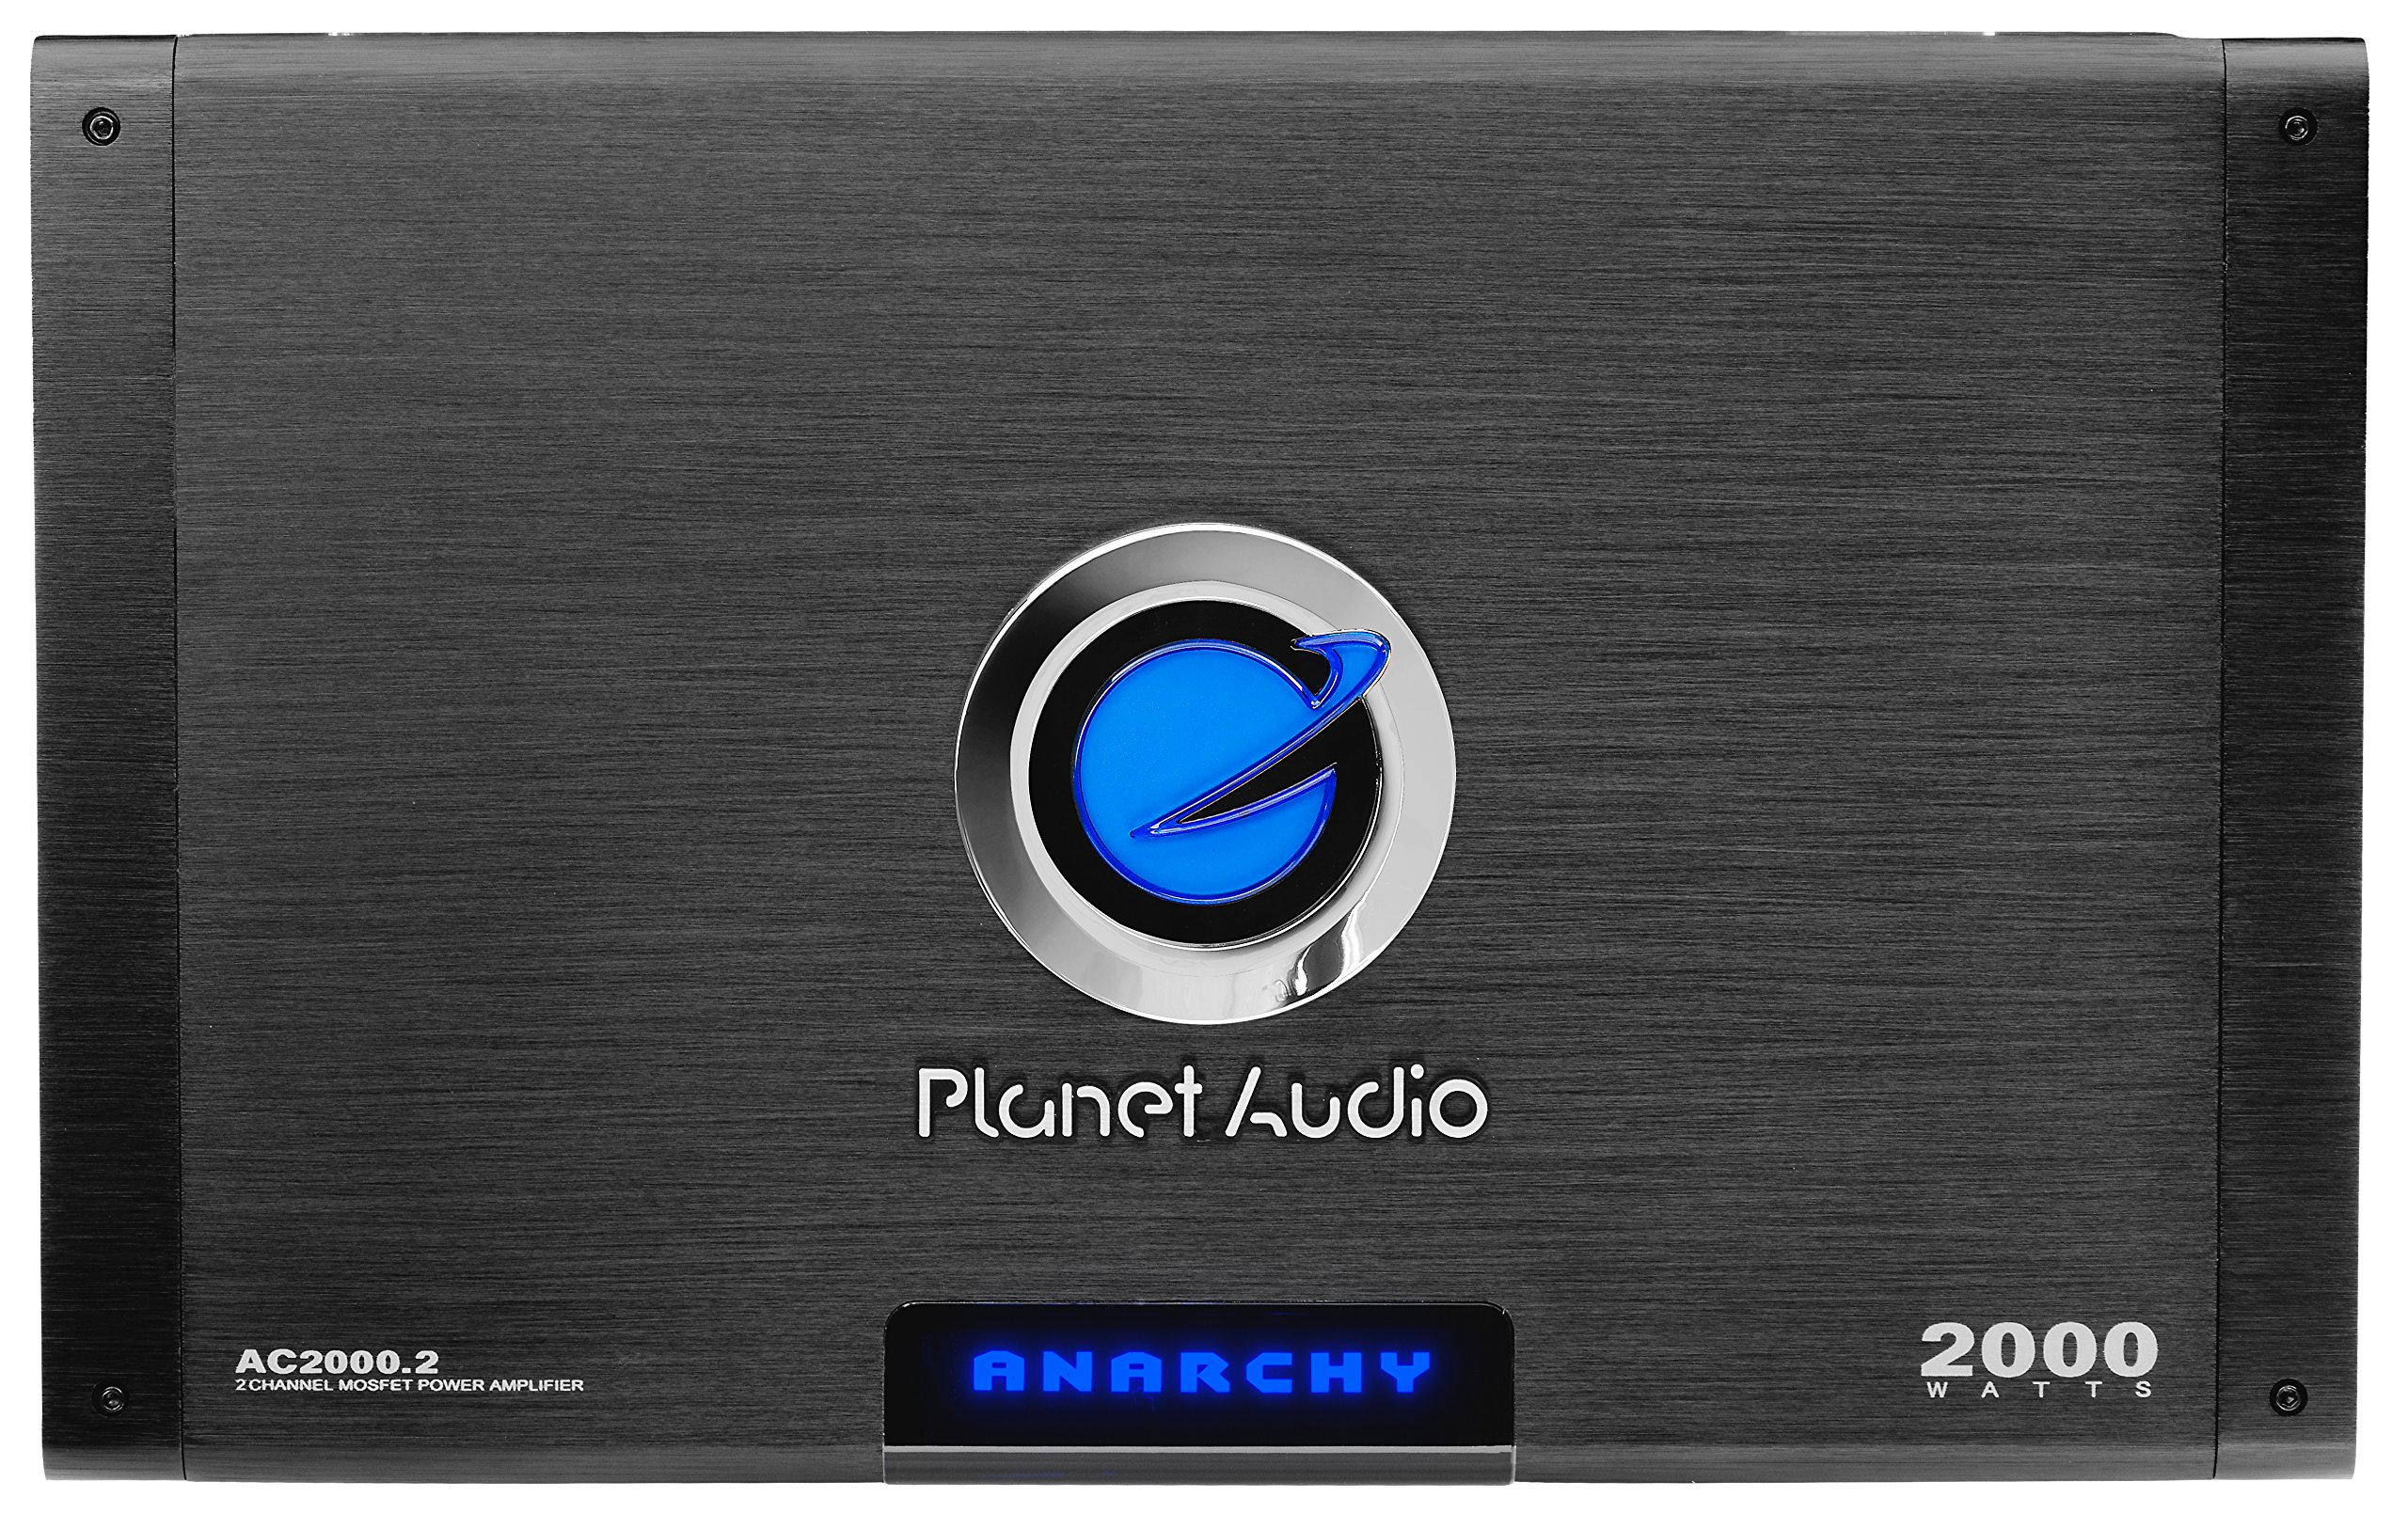 Planet Audio AC2000.2 Anarchy 2000 Watt, 2 Channel, 2/4 Ohm Stable Class A/B, Full Range, Bridgeable, MOSFET Car Amplifier with Remote Subwoofer Control